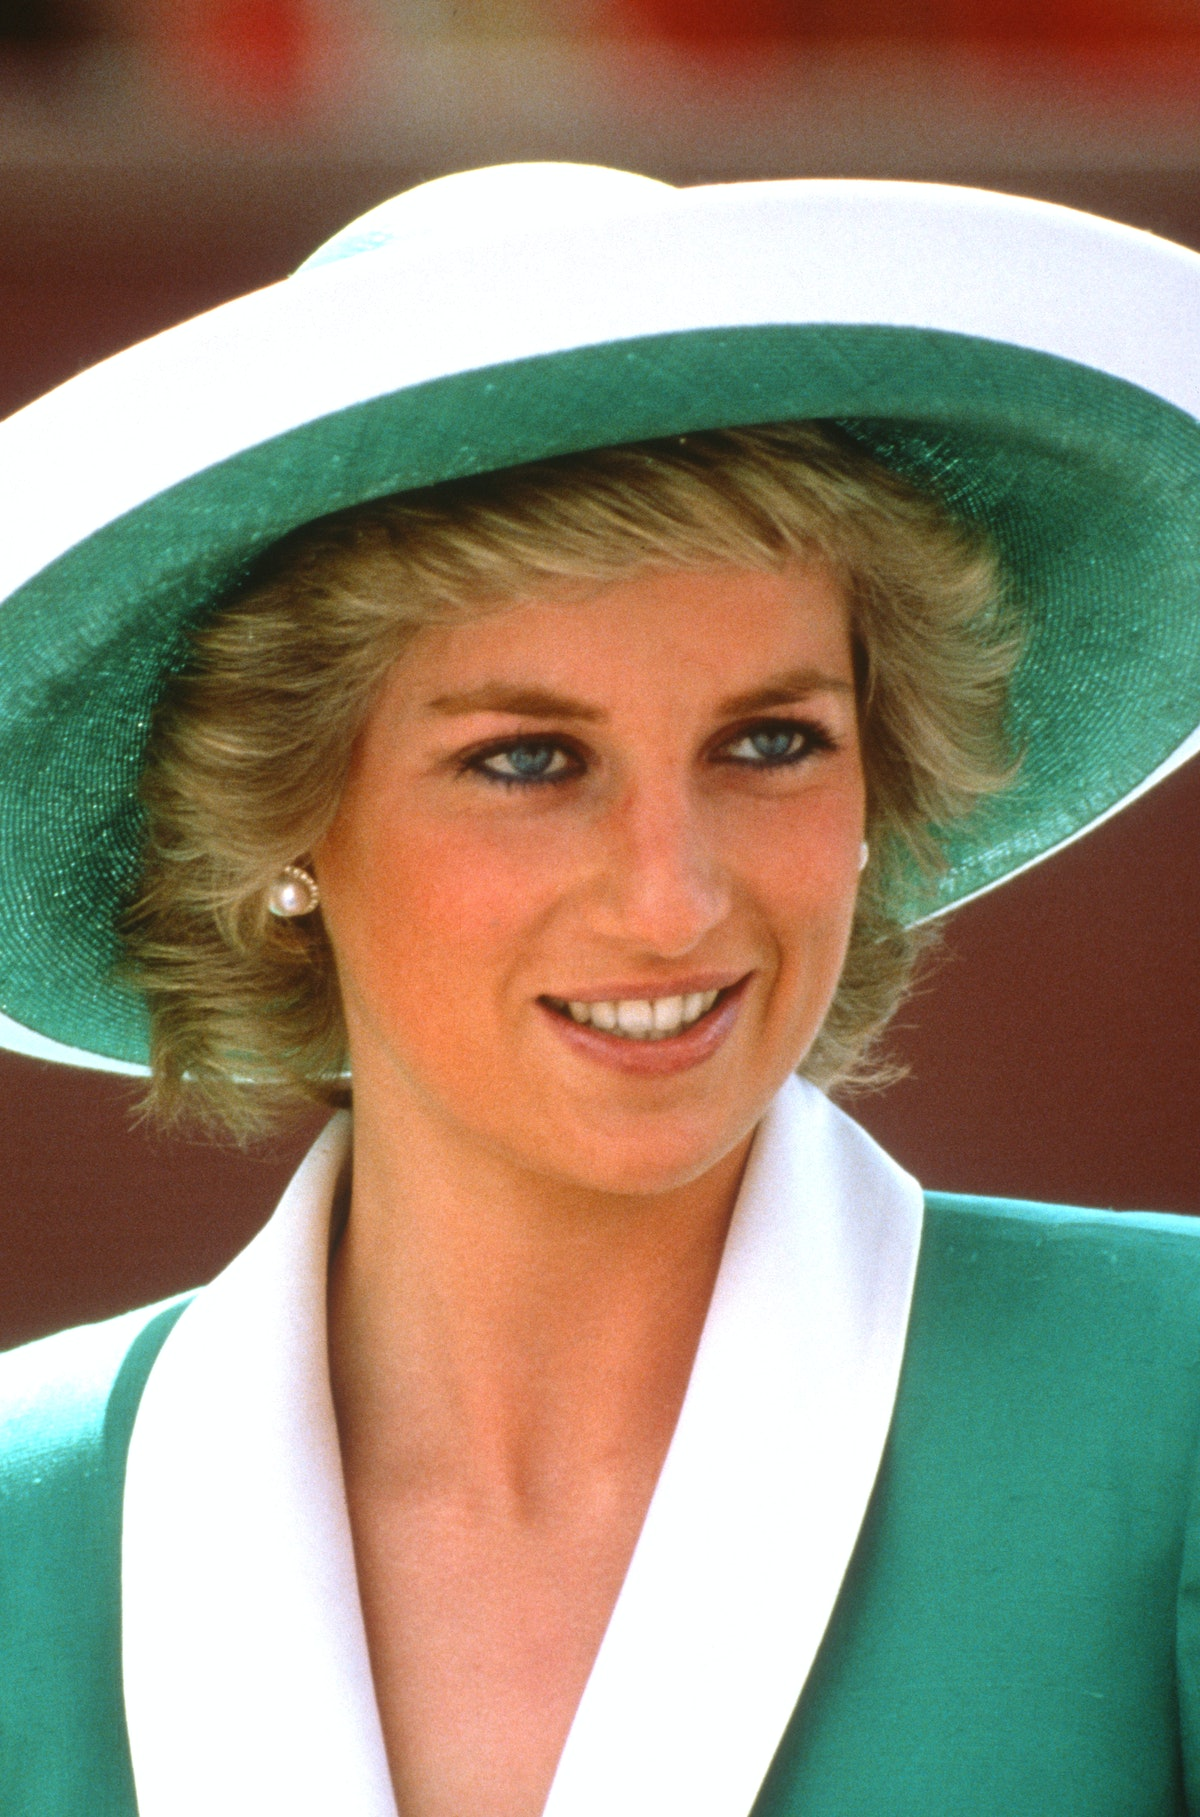 SYDNEY, AUSTRALIA - JANUARY 26: Diana, Princess of Wales, wearing a green dress with a white collar ...